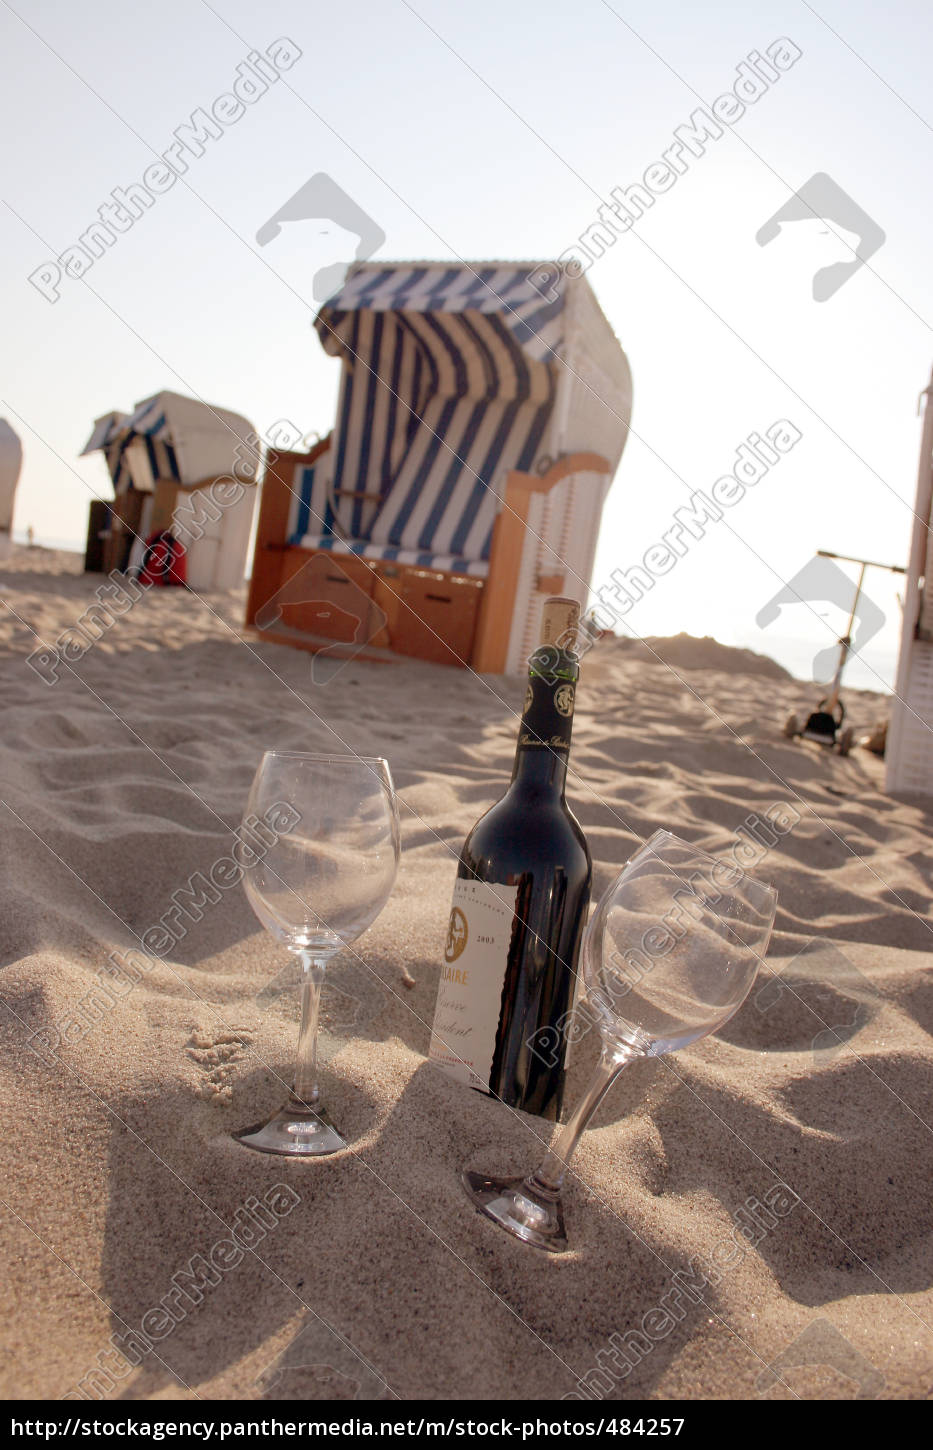 beach, basket, and, wine, bottle - 484257